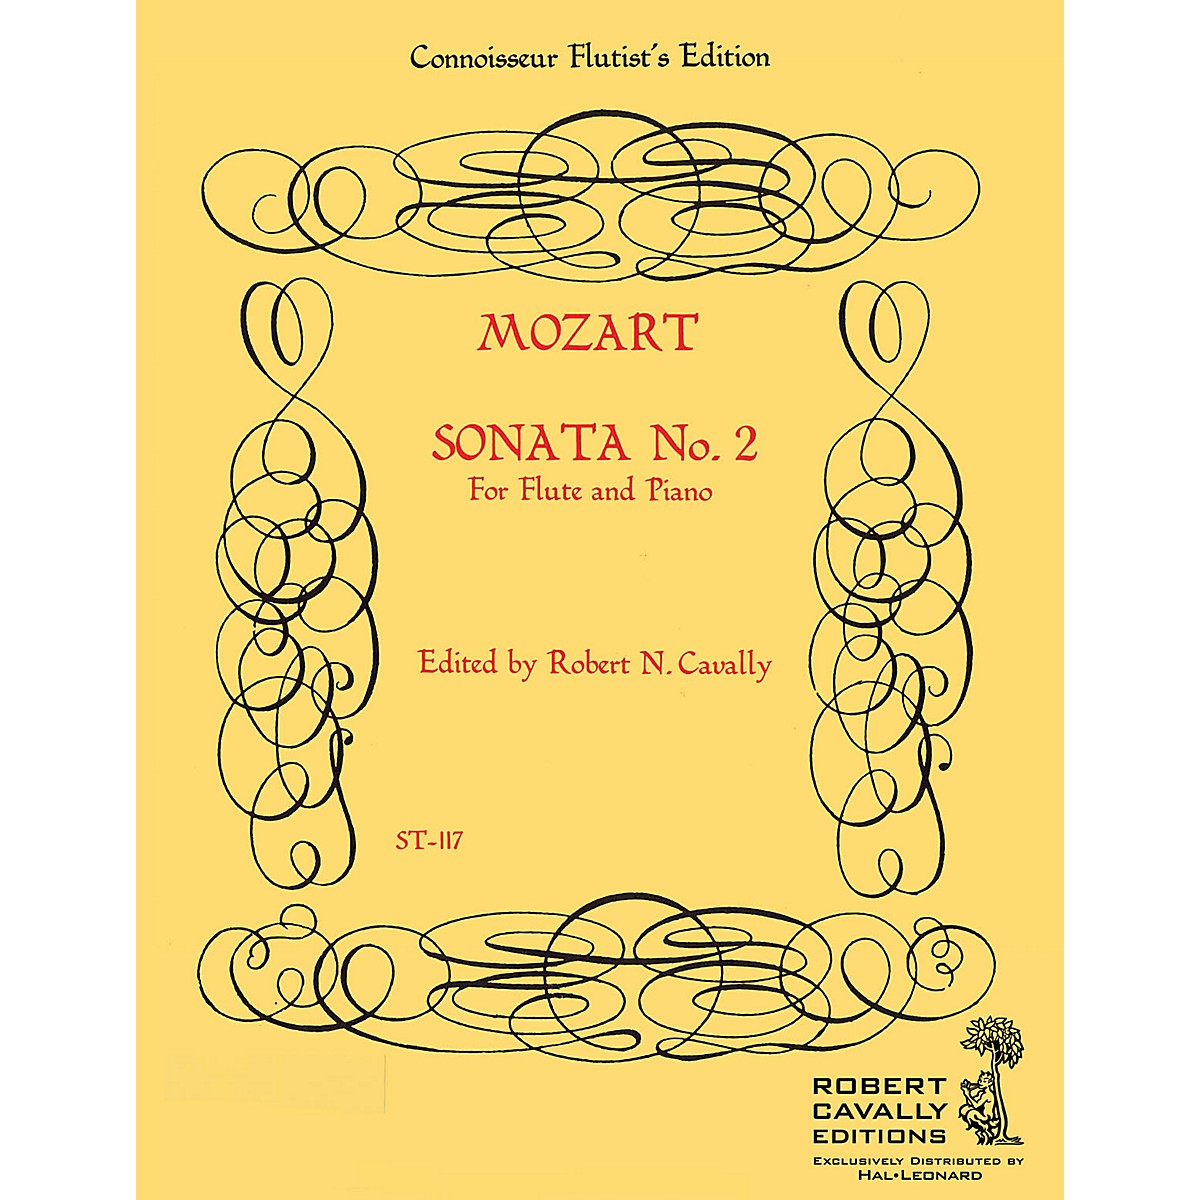 Cavally Editions Sonata No. 2 in G (Connoisseur Flutist's Edition) Robert Cavally Editions Series by Robert Cavally